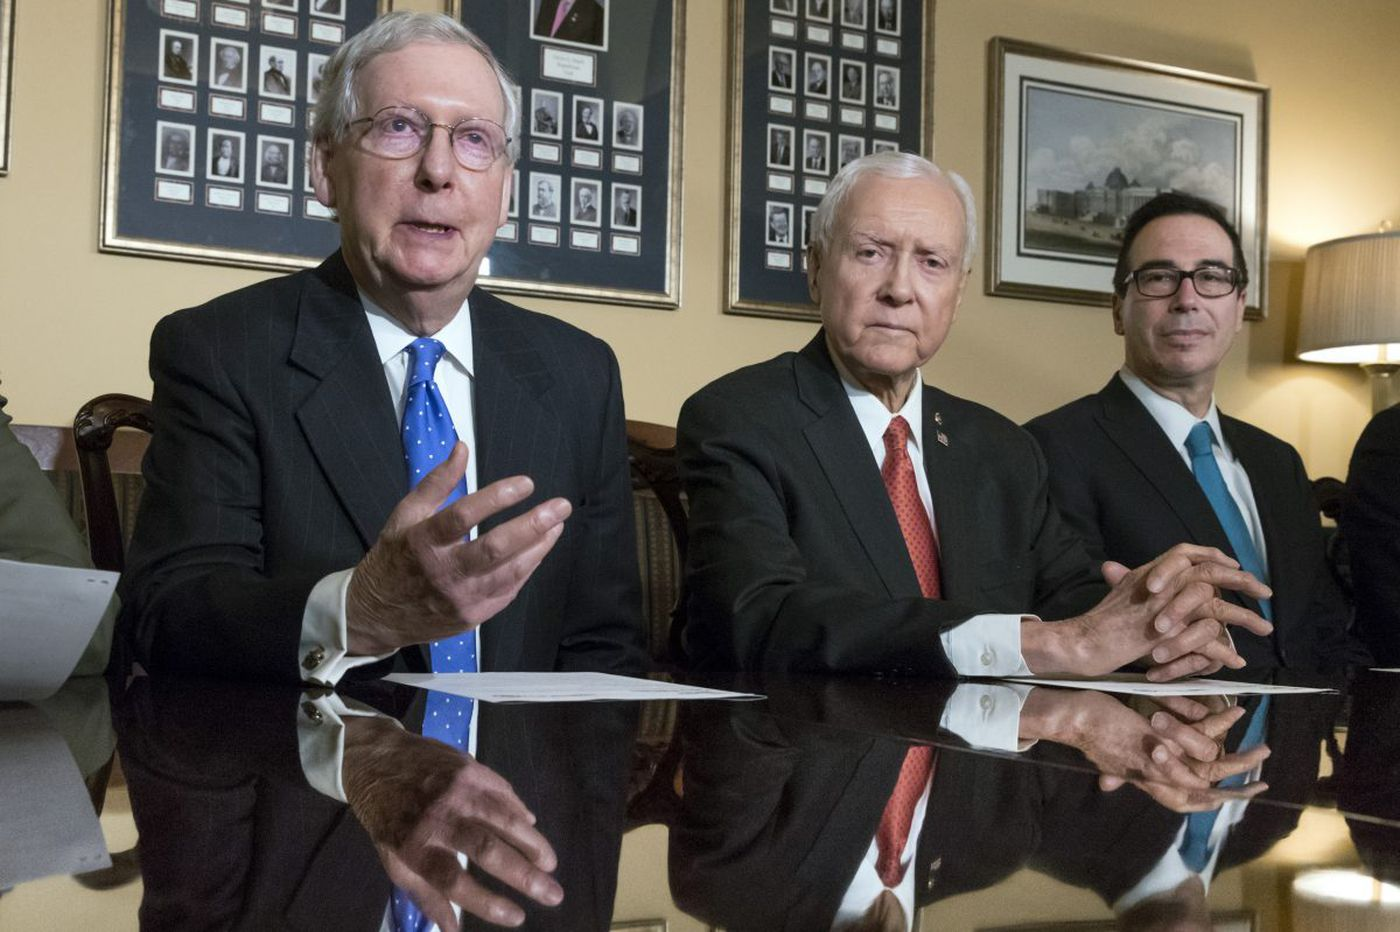 True tax reform will take compromise | Opinion